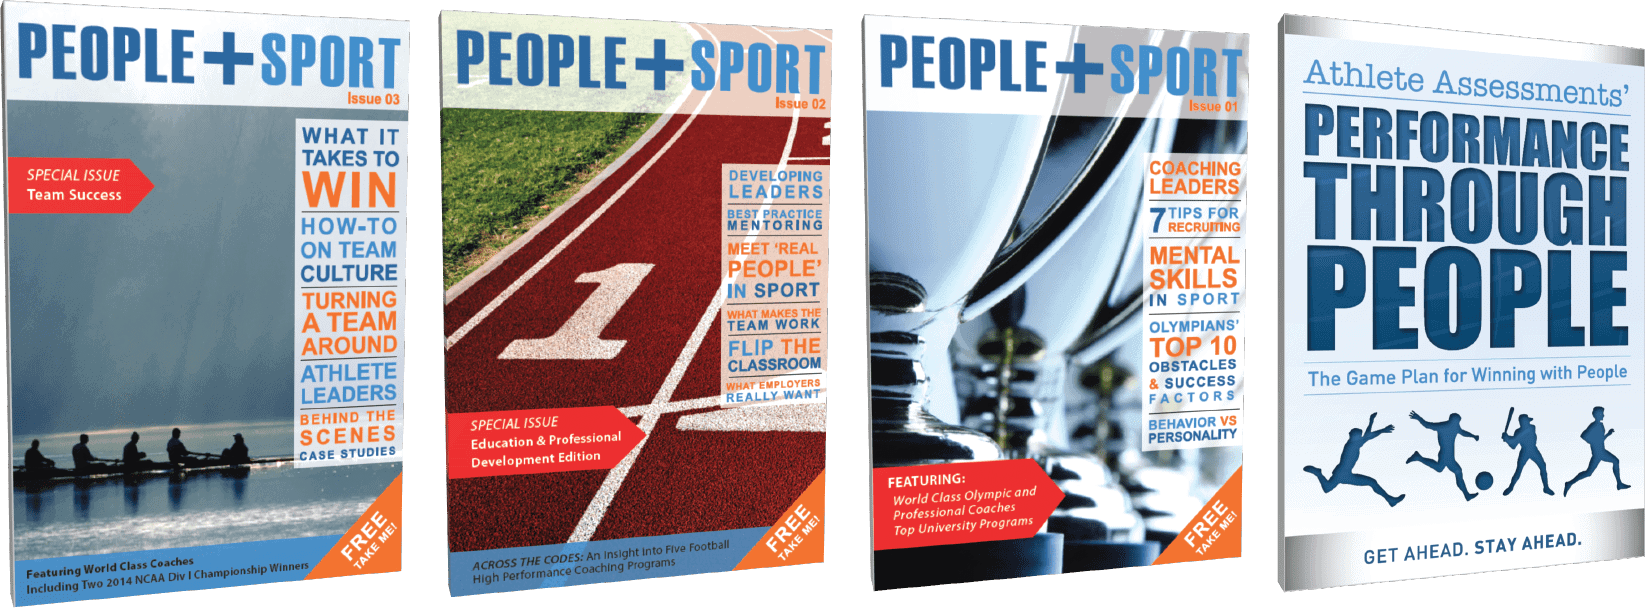 Peoplesport magazine read peoplesport online download and print a pdf version or contact us to request a physical copy to be mailed to you publicscrutiny Gallery